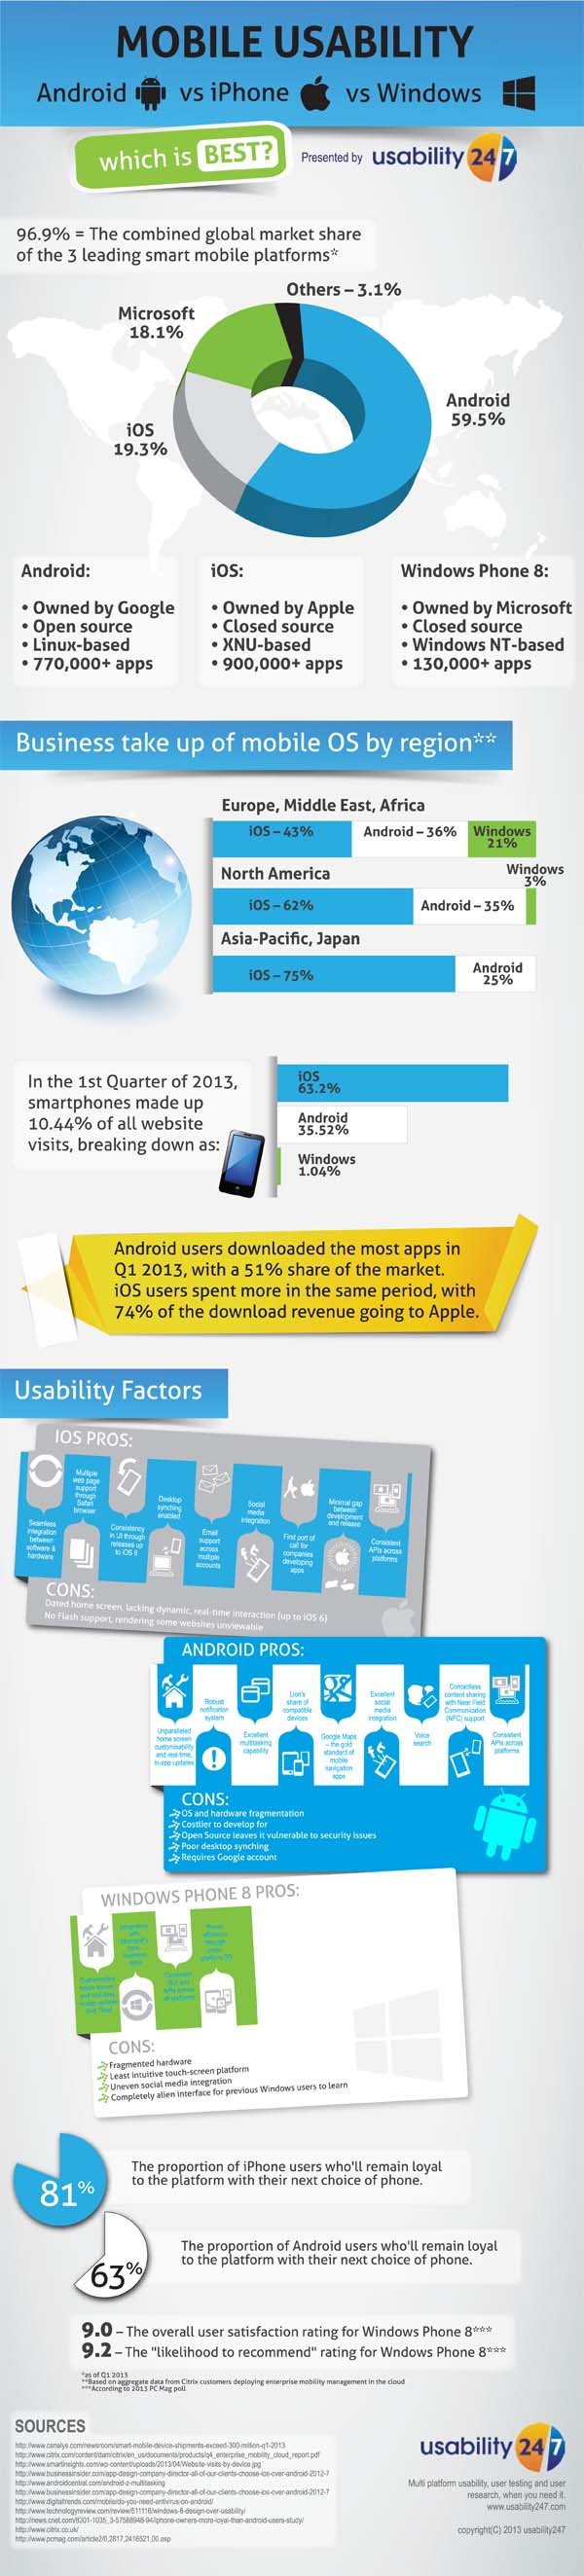 Mobile usability: android vs iPhone vs Windows infographic